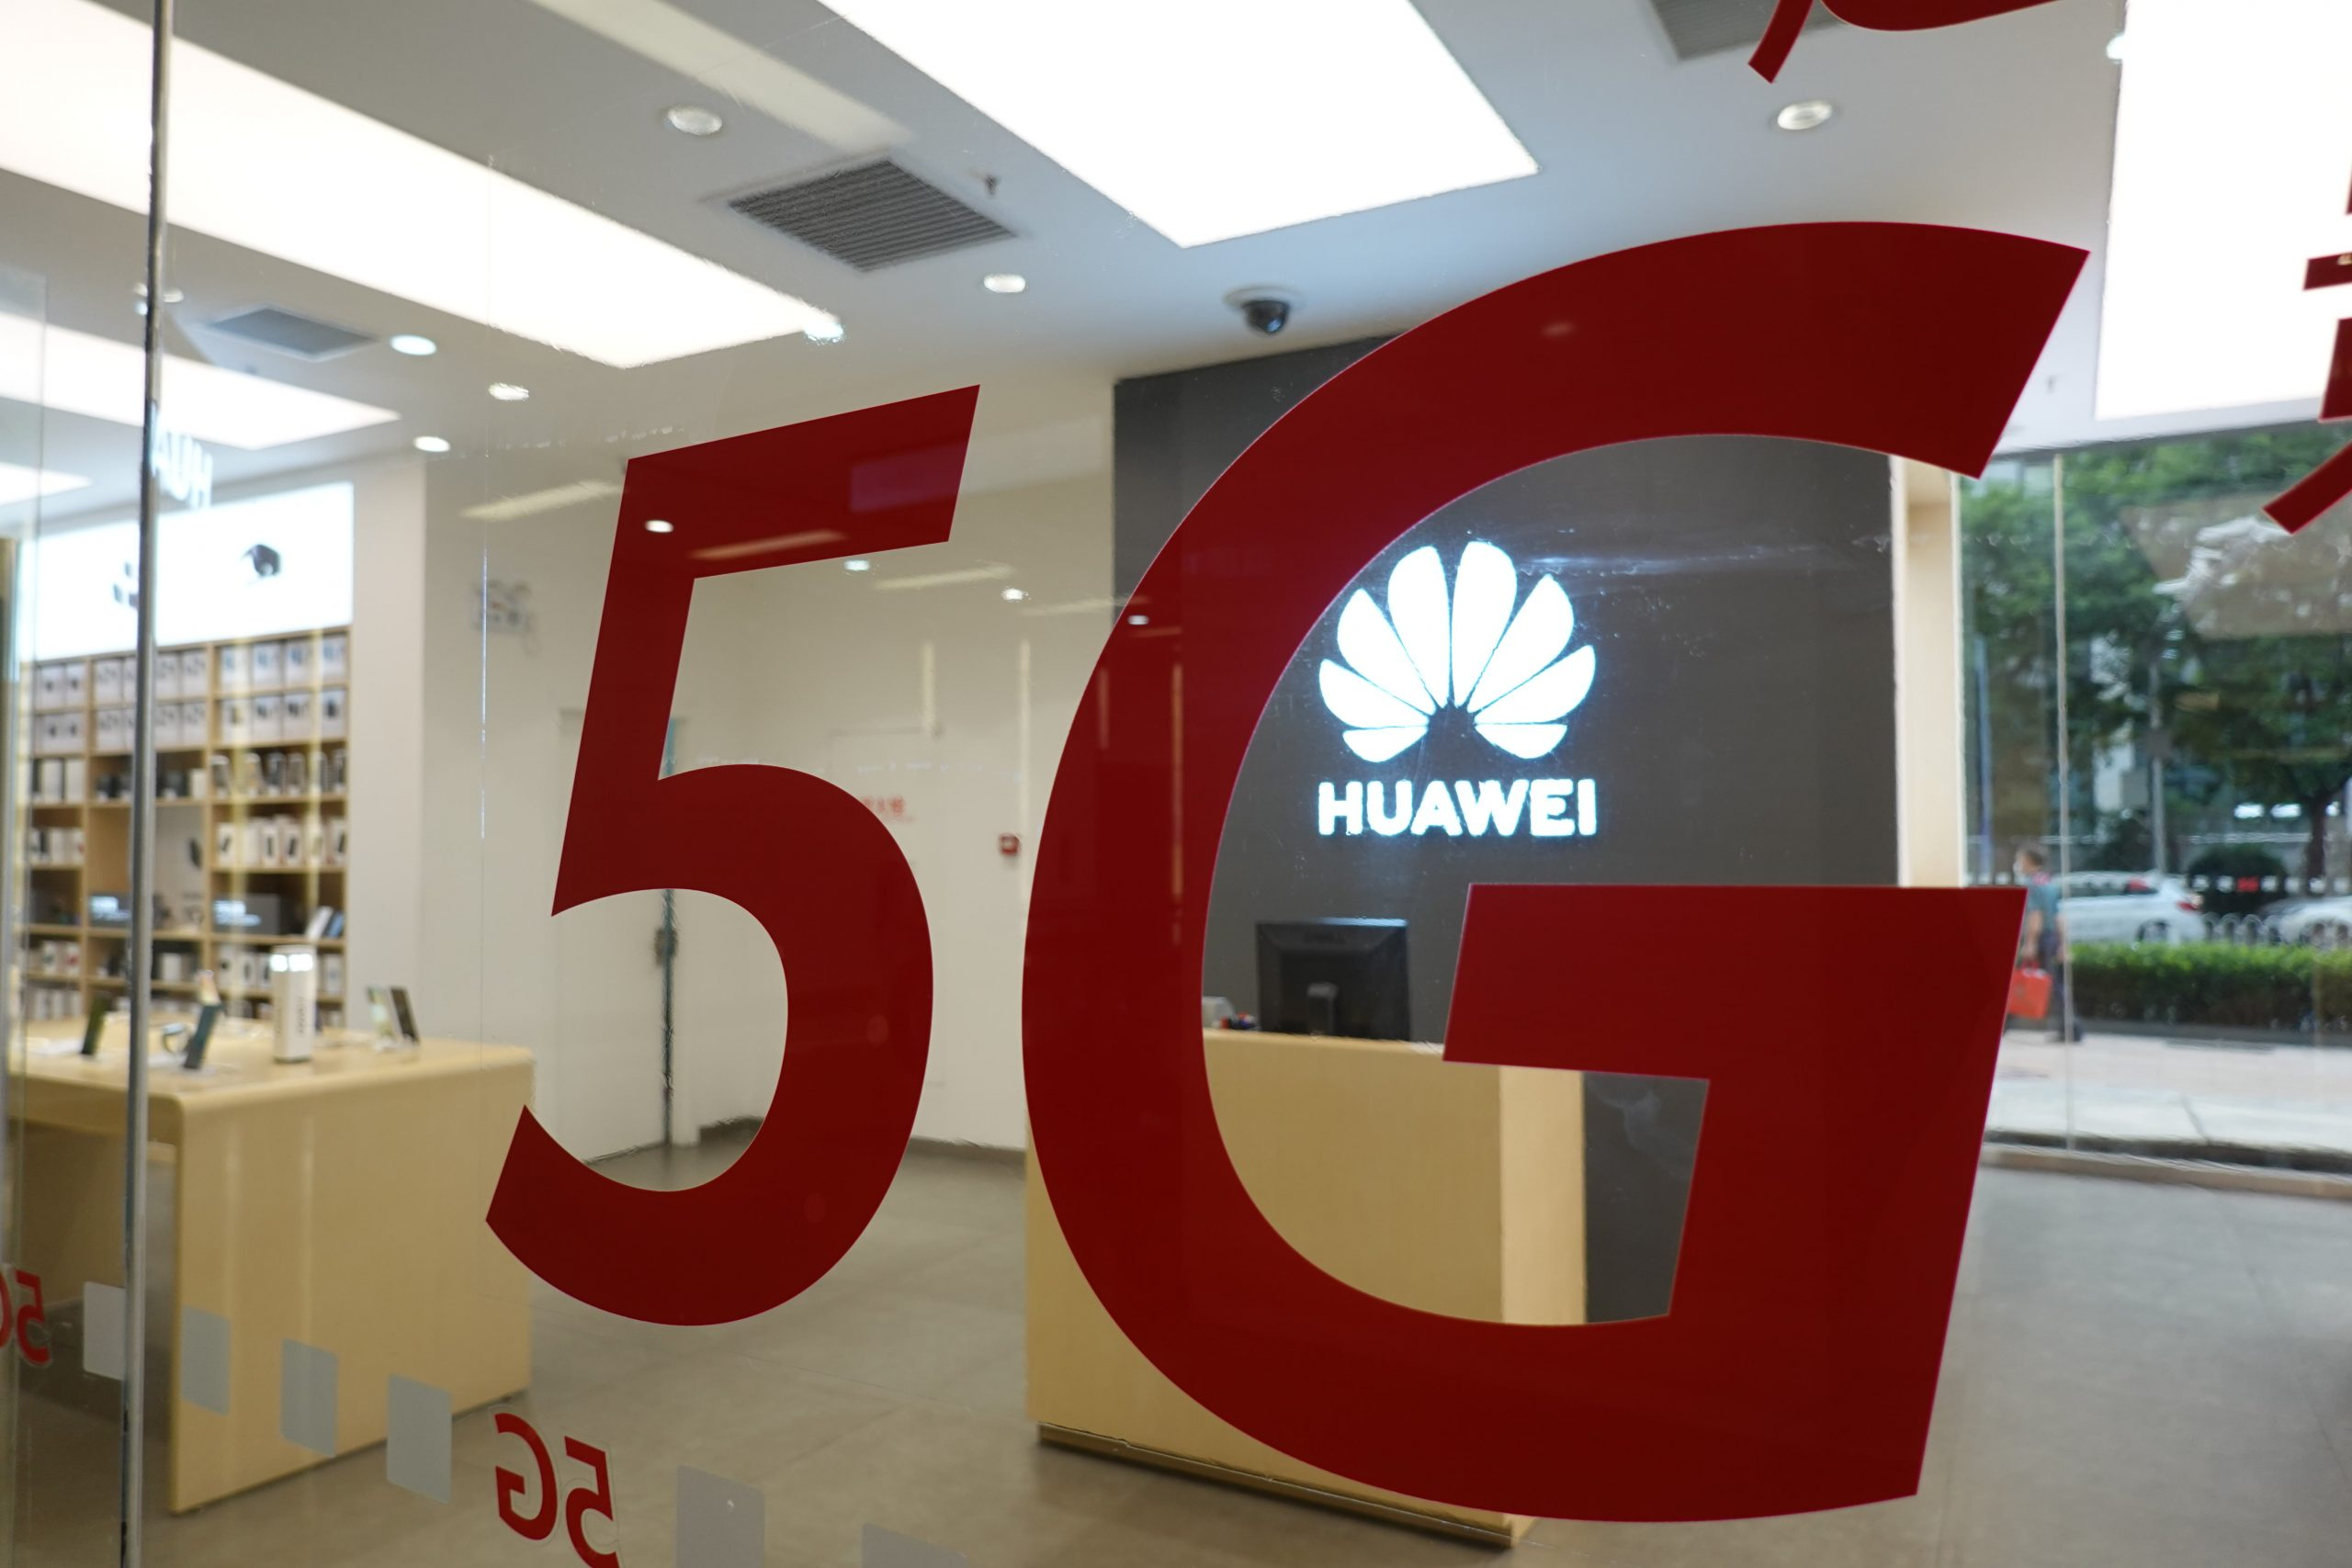 Huawei sees sharp growth slowdown as UK weighs 5G ban on Chinese giant